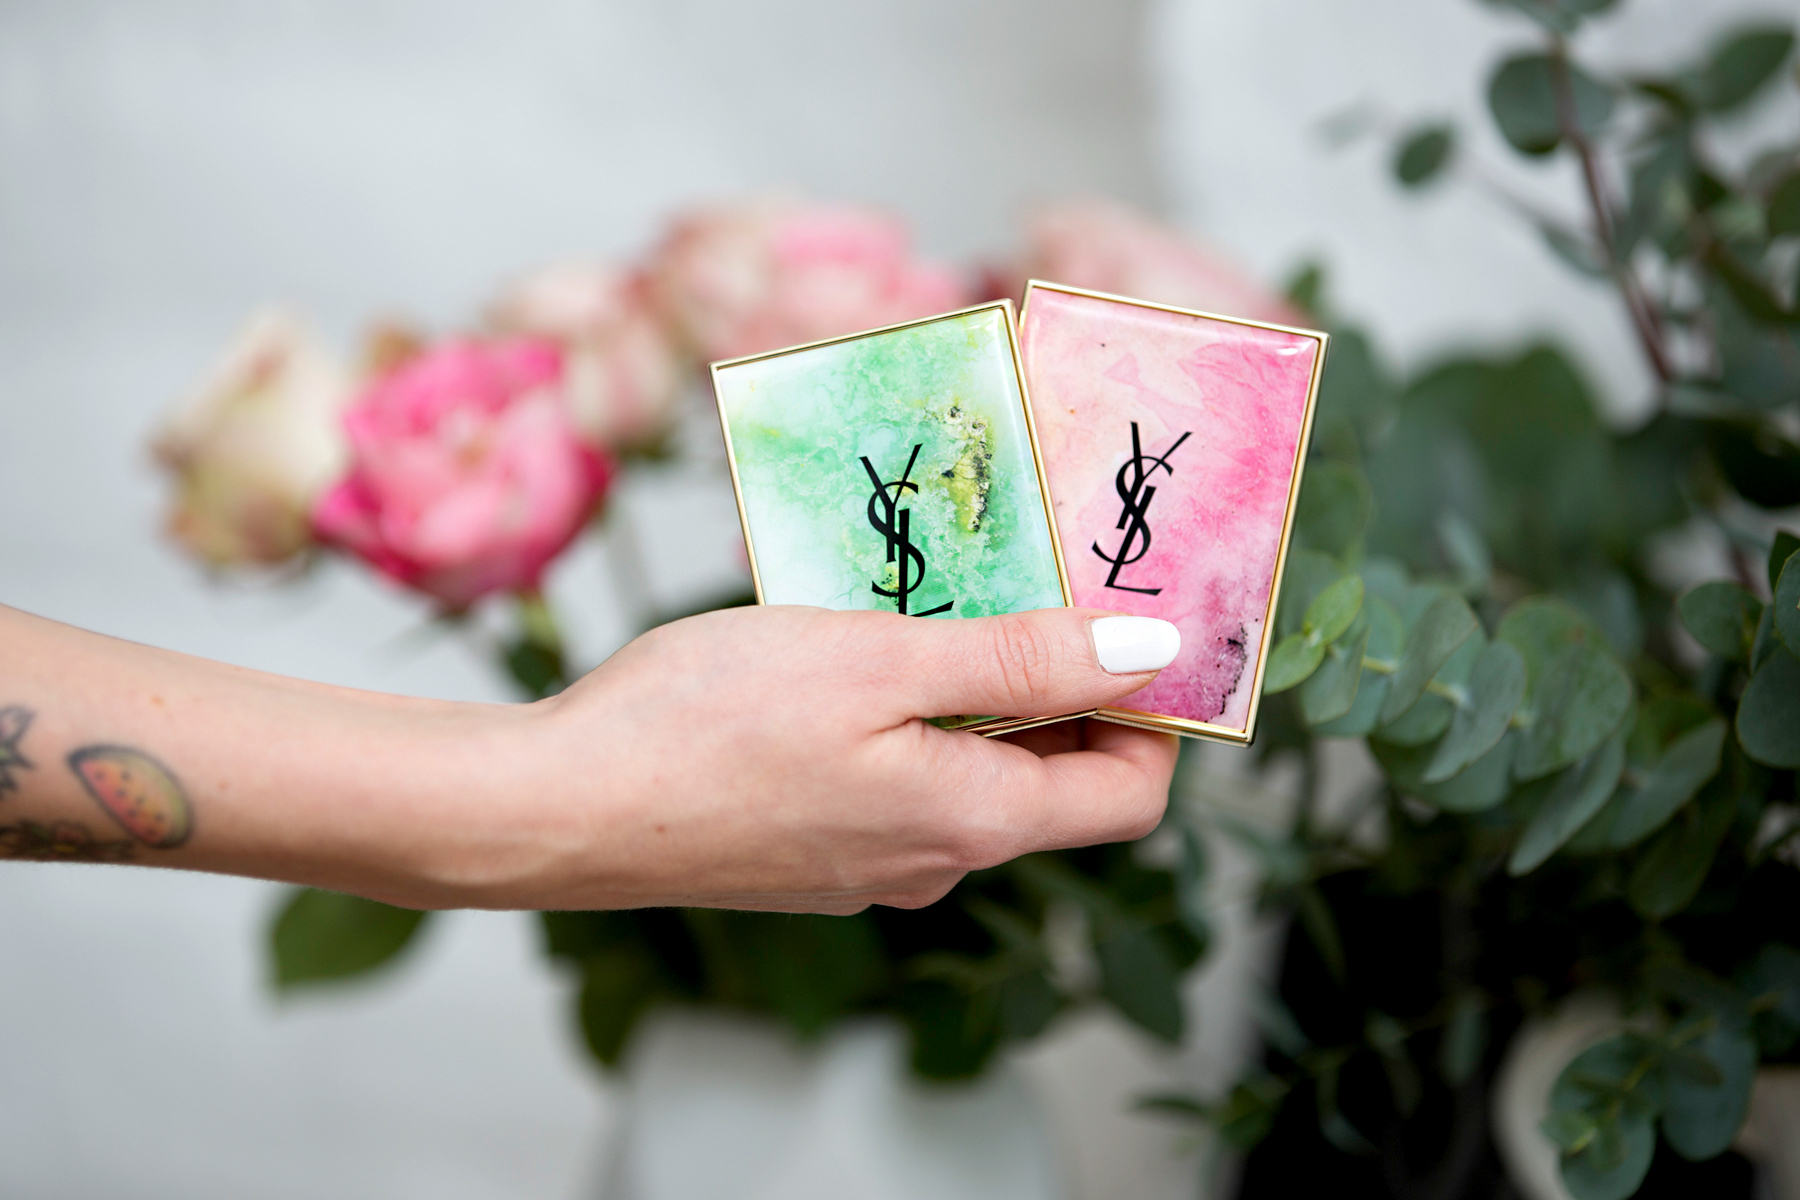 YSL Boho Stones Make-Up special edition blush eye shadow palette beauty beautyblogger spring look cute girly schminken amu ricarda schernus beautyblogger cats & dogs blog düsseldorf 4